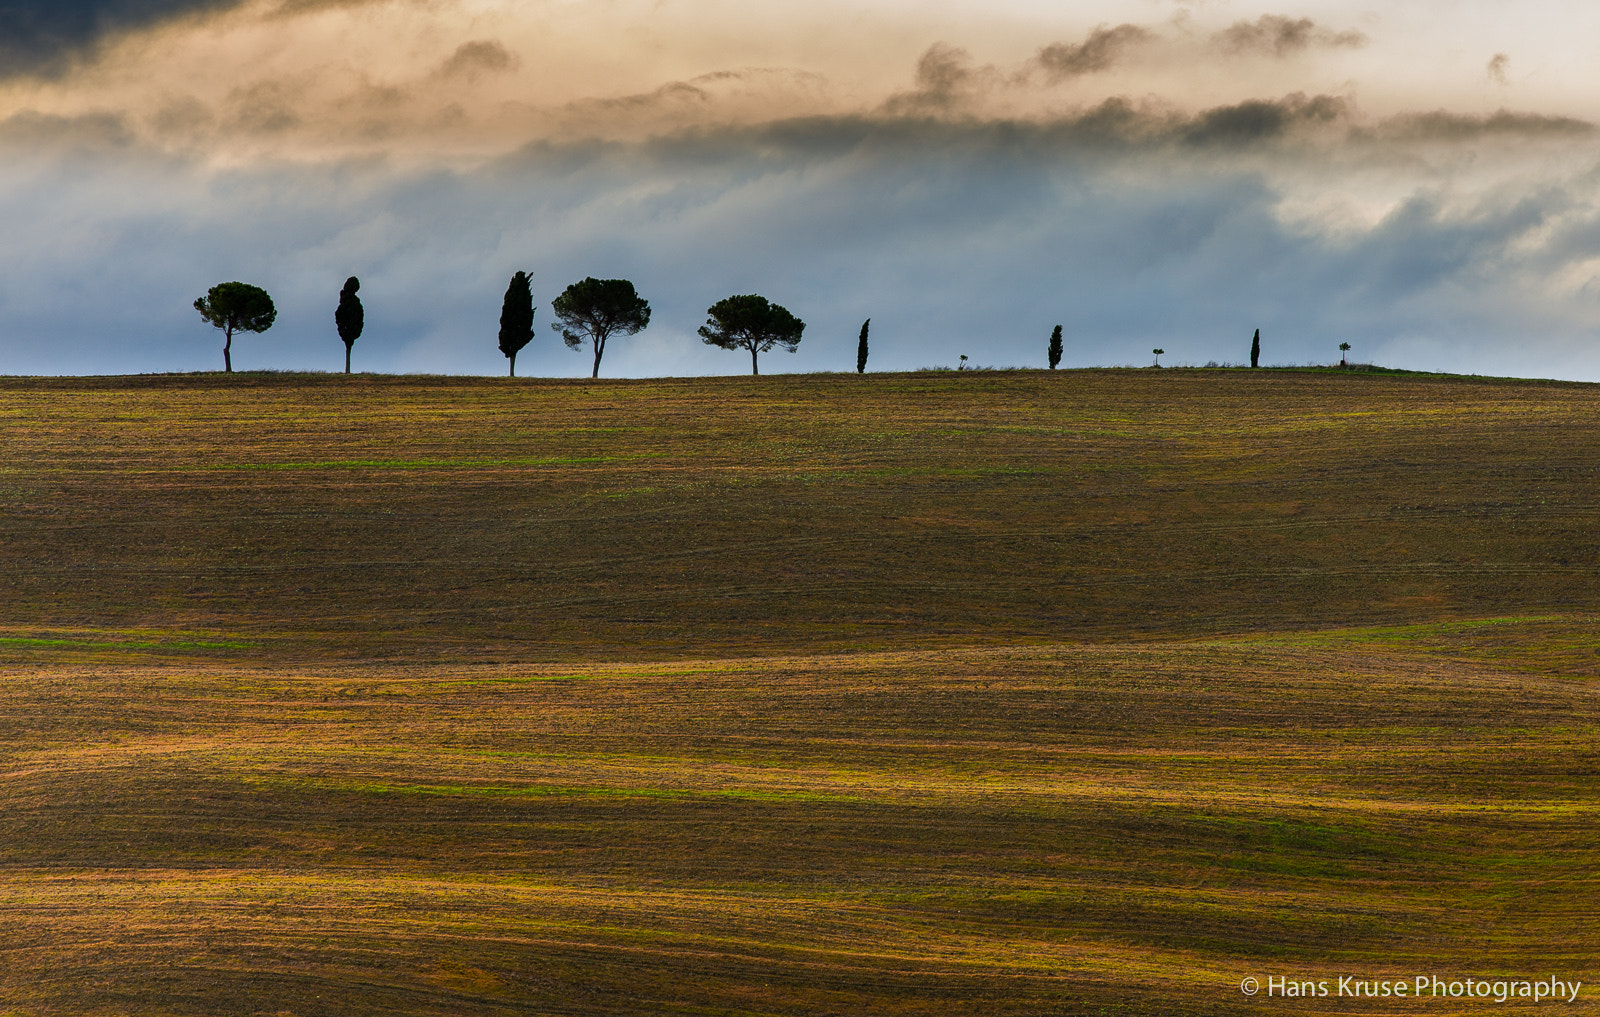 Photograph Tuscan simplicity by Hans Kruse on 500px